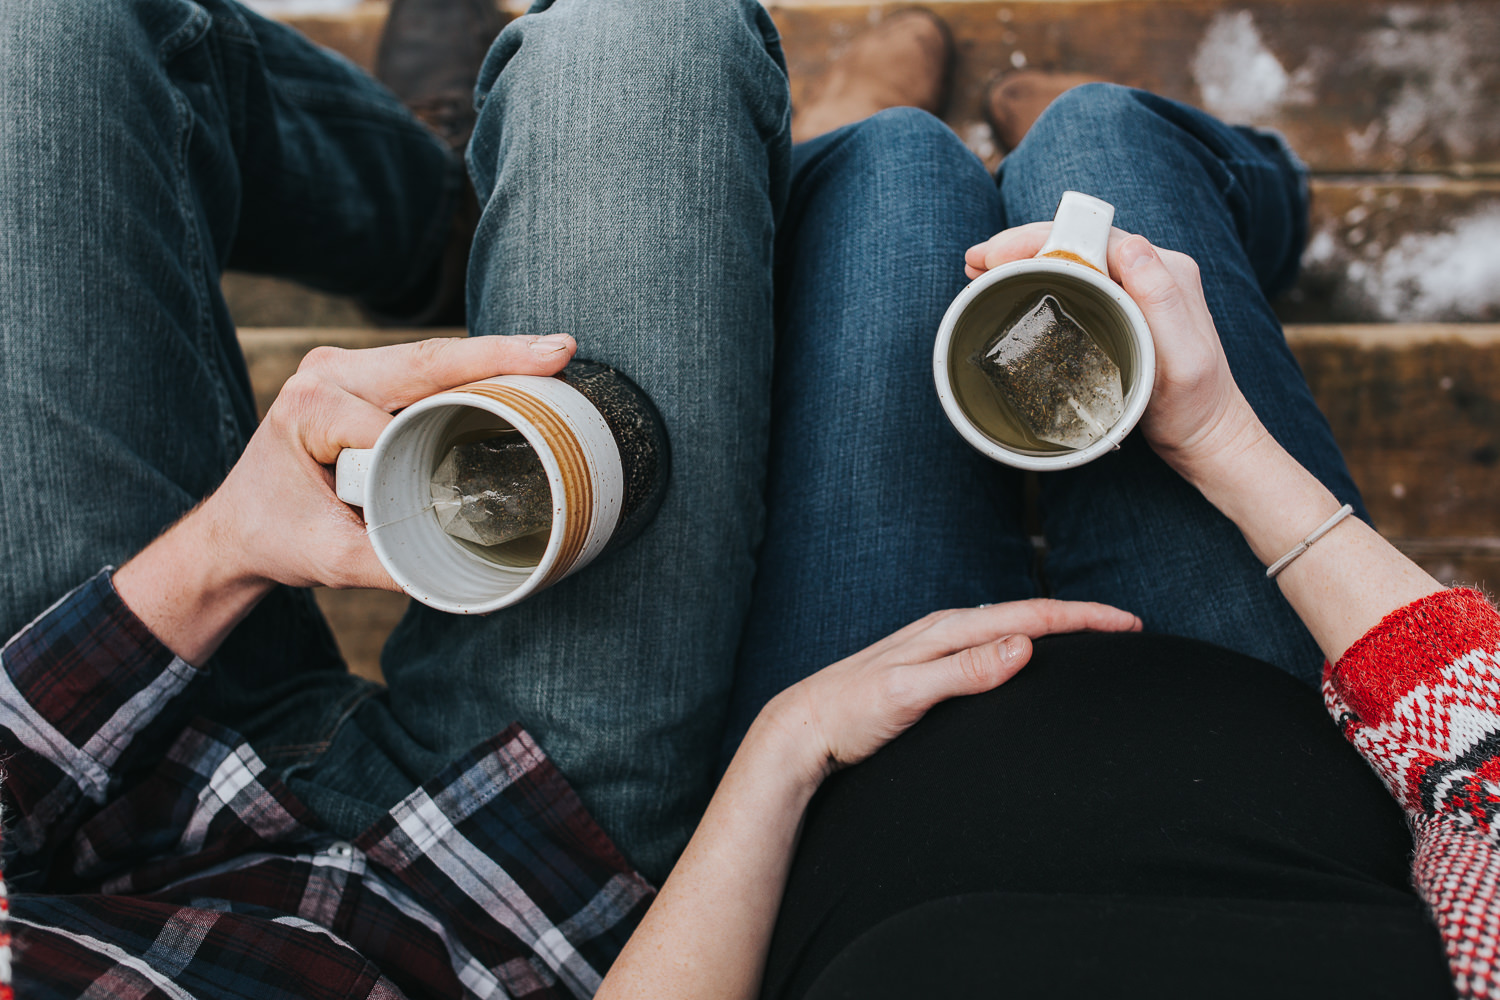 husband and wife holding mugs of tea, mom's hand on baby belly - Newmarket lifestyle photos